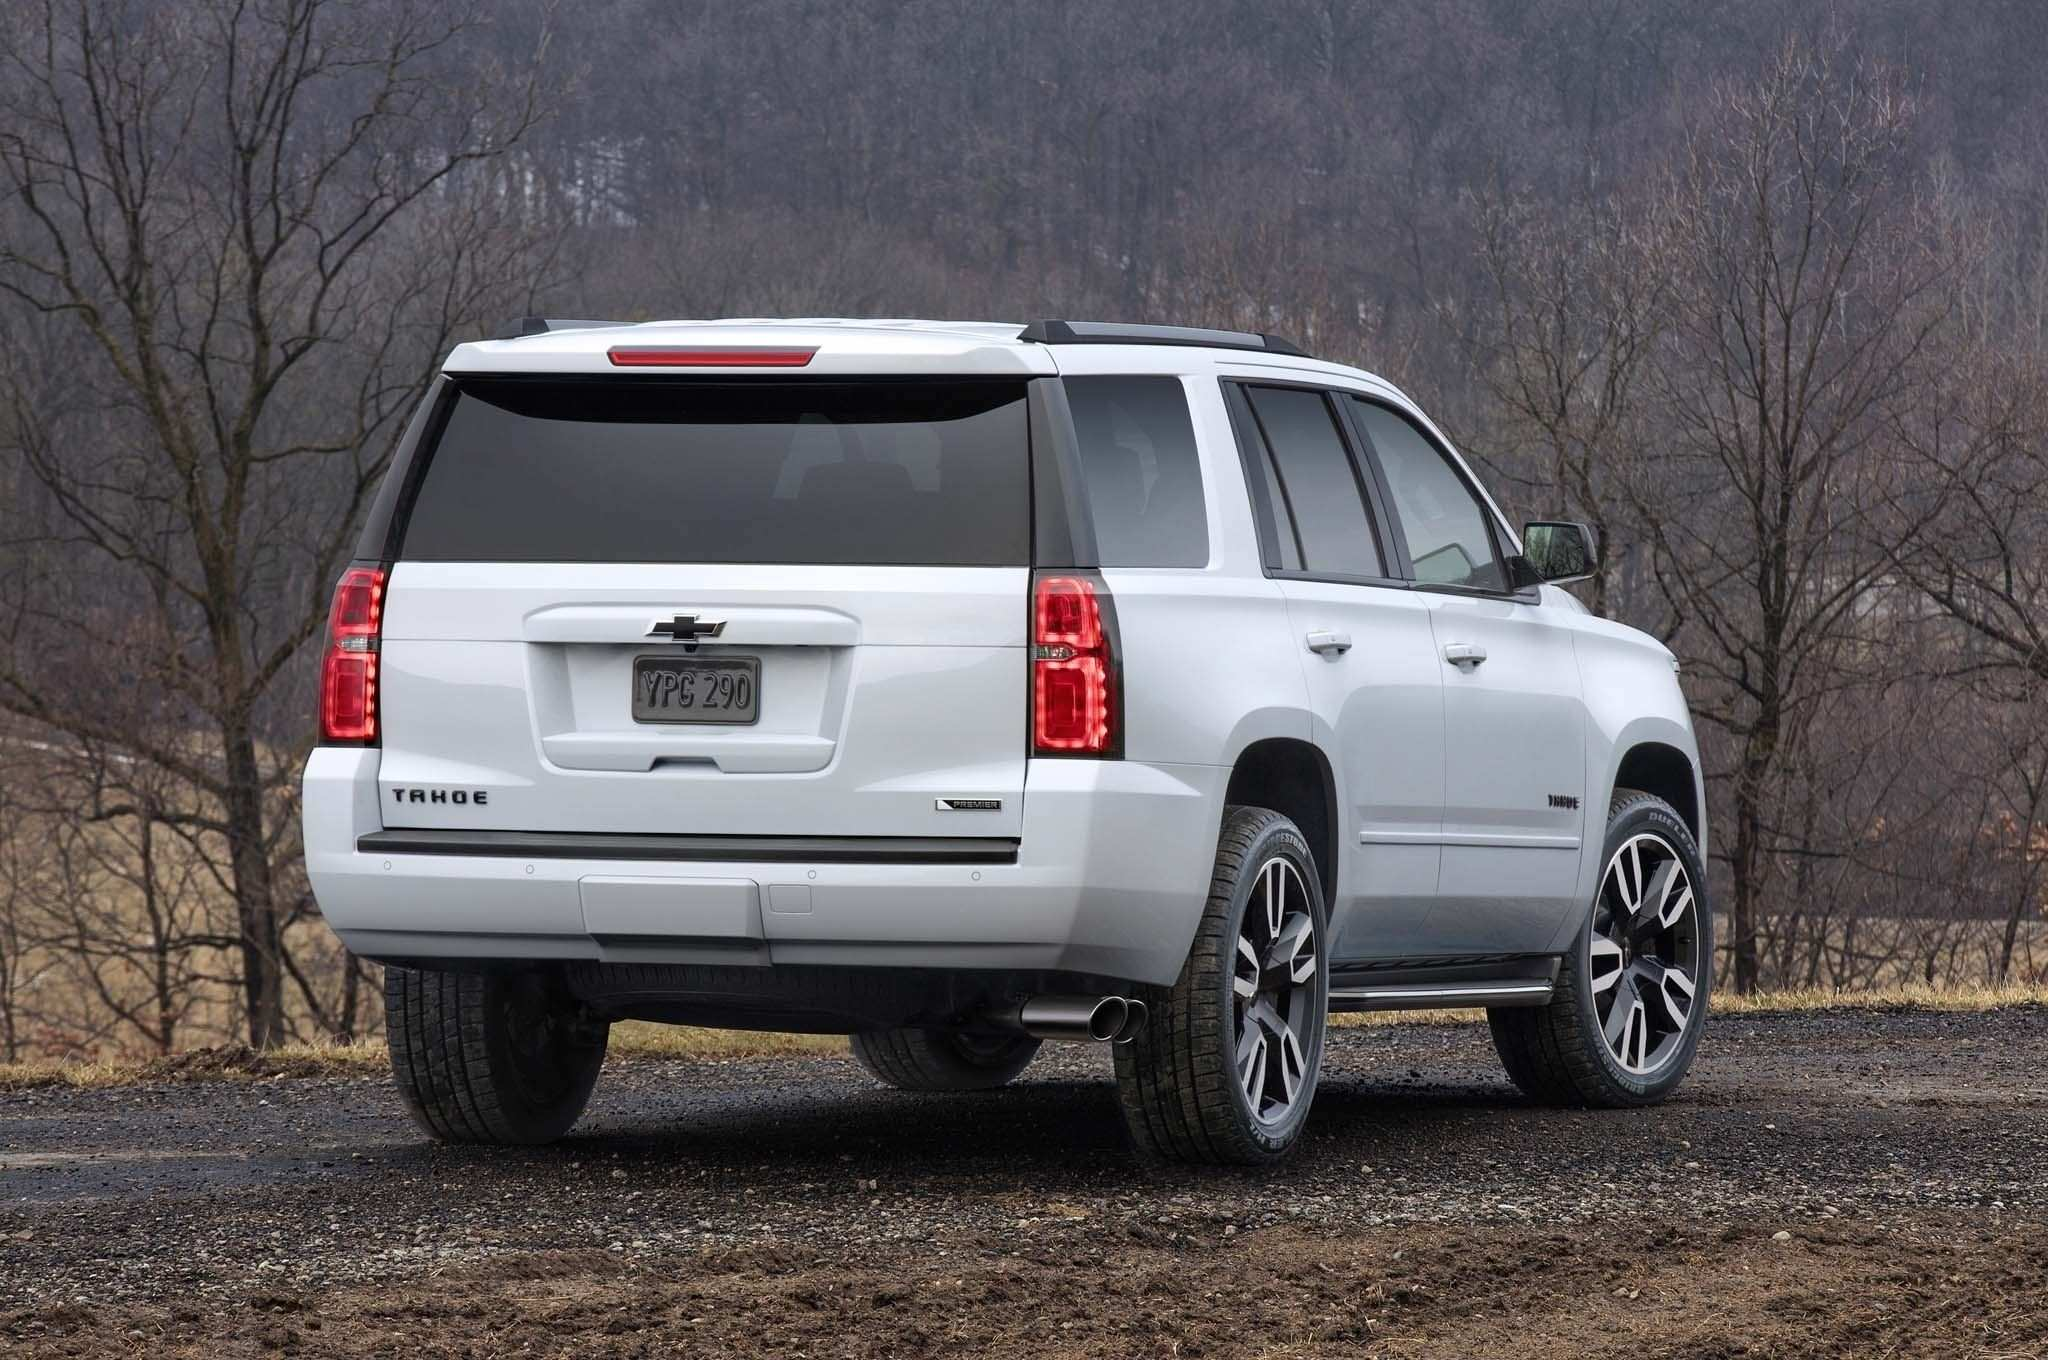 24 Gallery of 2020 Chevy Tahoe Z71 Ss Style with 2020 Chevy Tahoe Z71 Ss